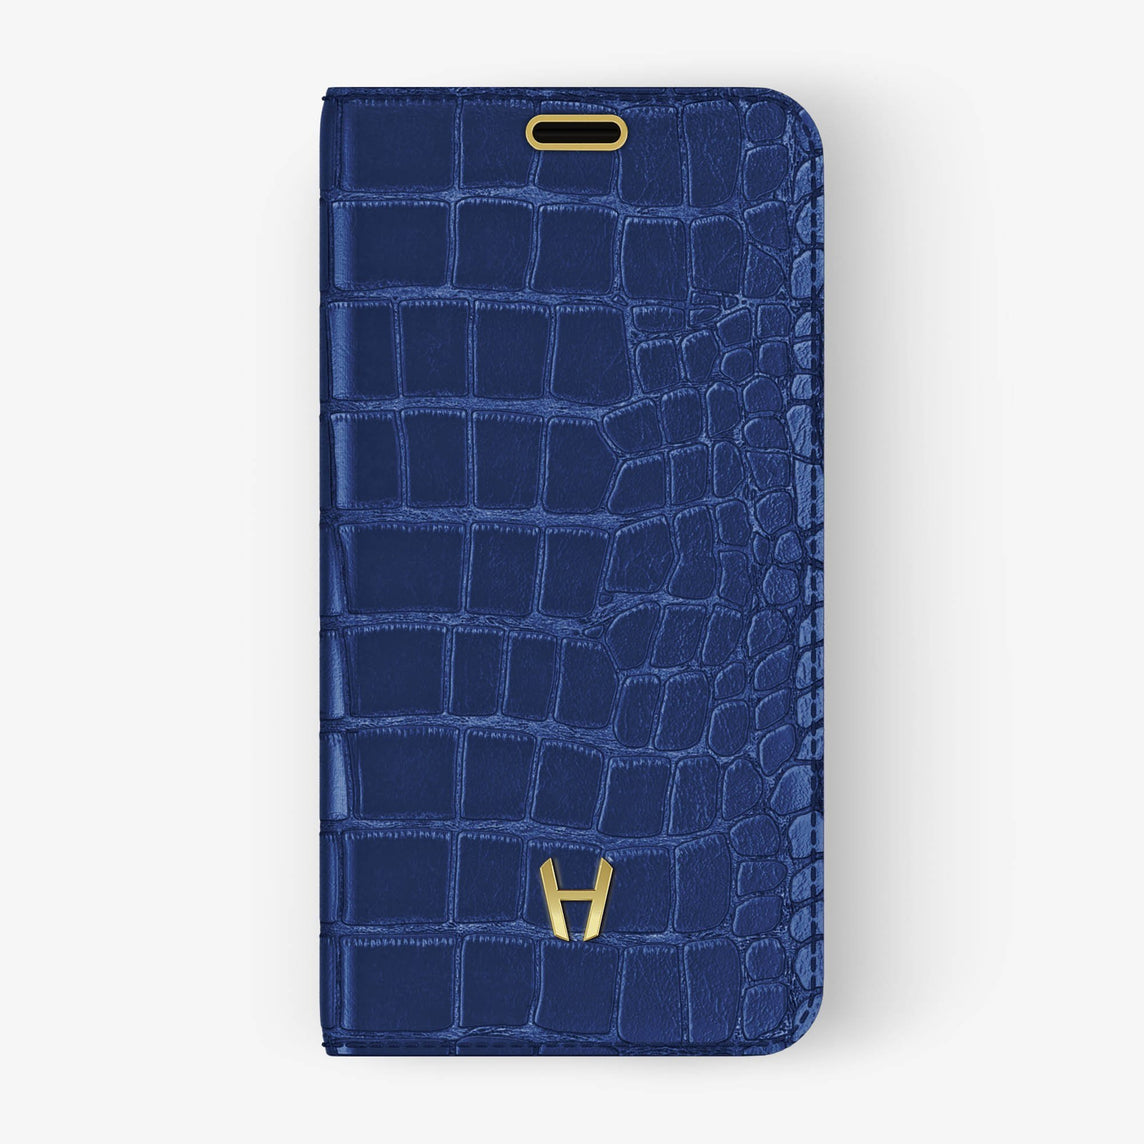 Navy Blue Alligator iPhone Folio Case for iPhone X finishing yellow gold - Hadoro Luxury Cases